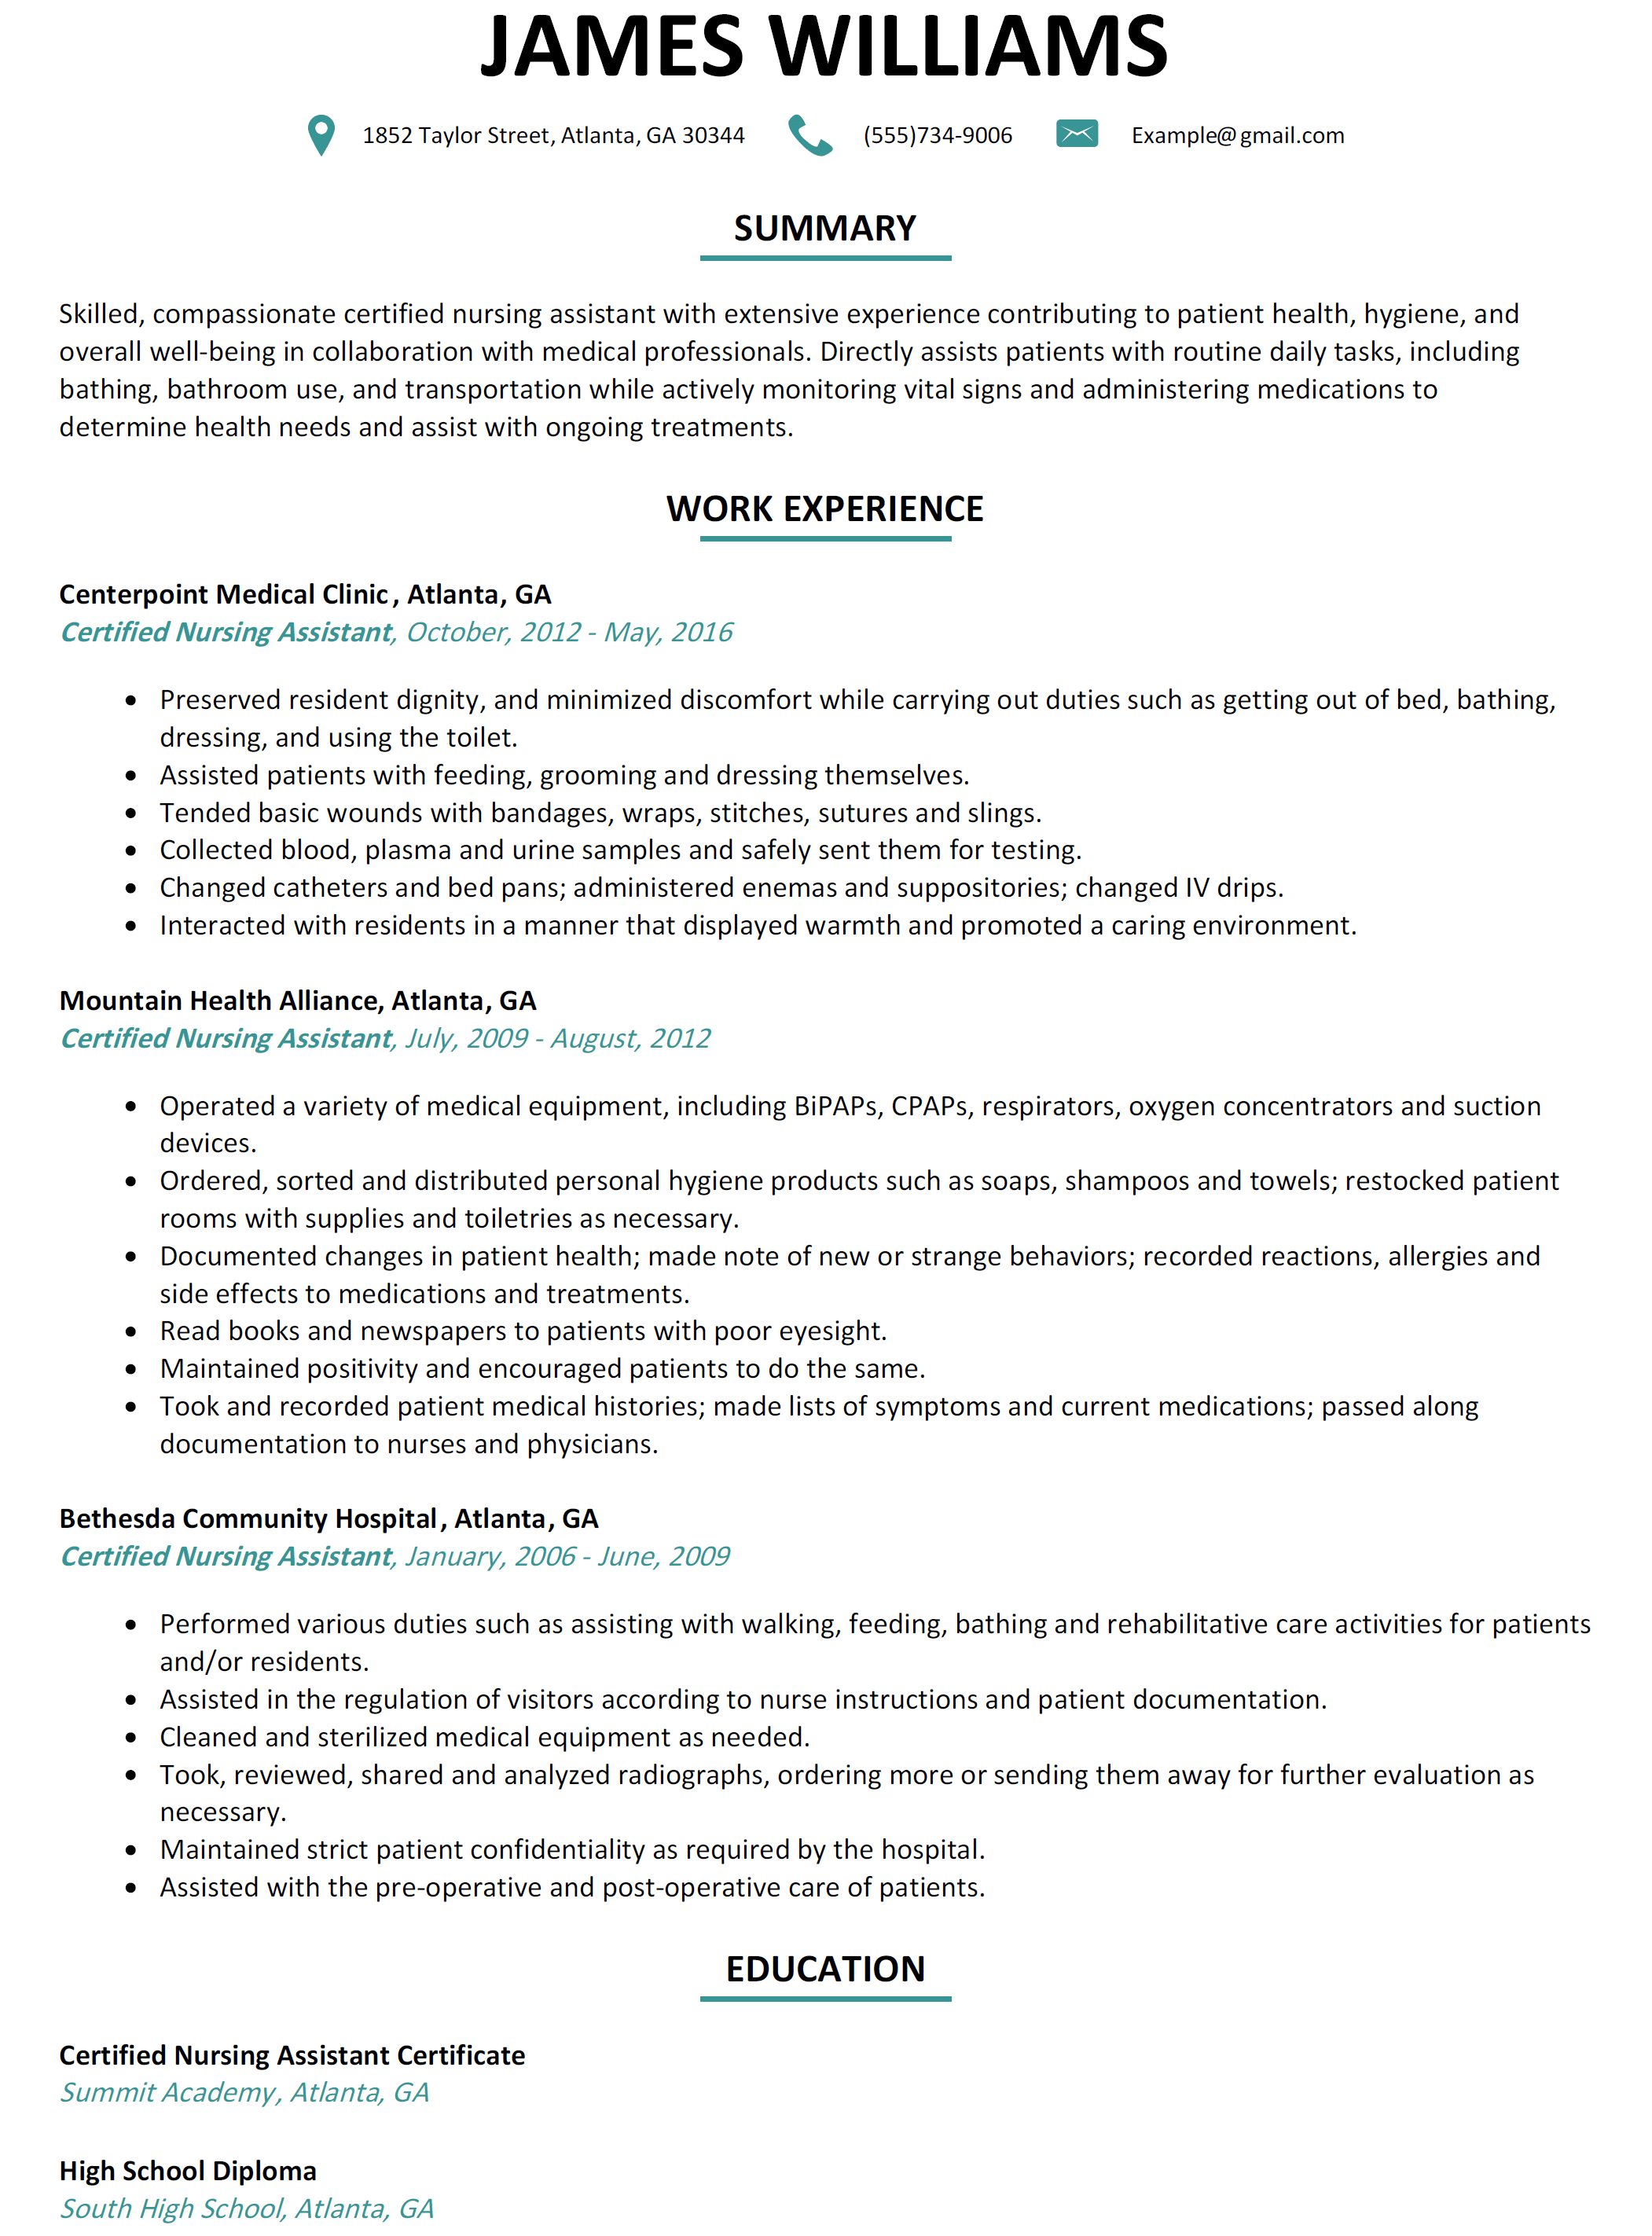 sample phlebotomy resume cover letter entry level example cna patient care technician - Patient Care Technician Sample Resume